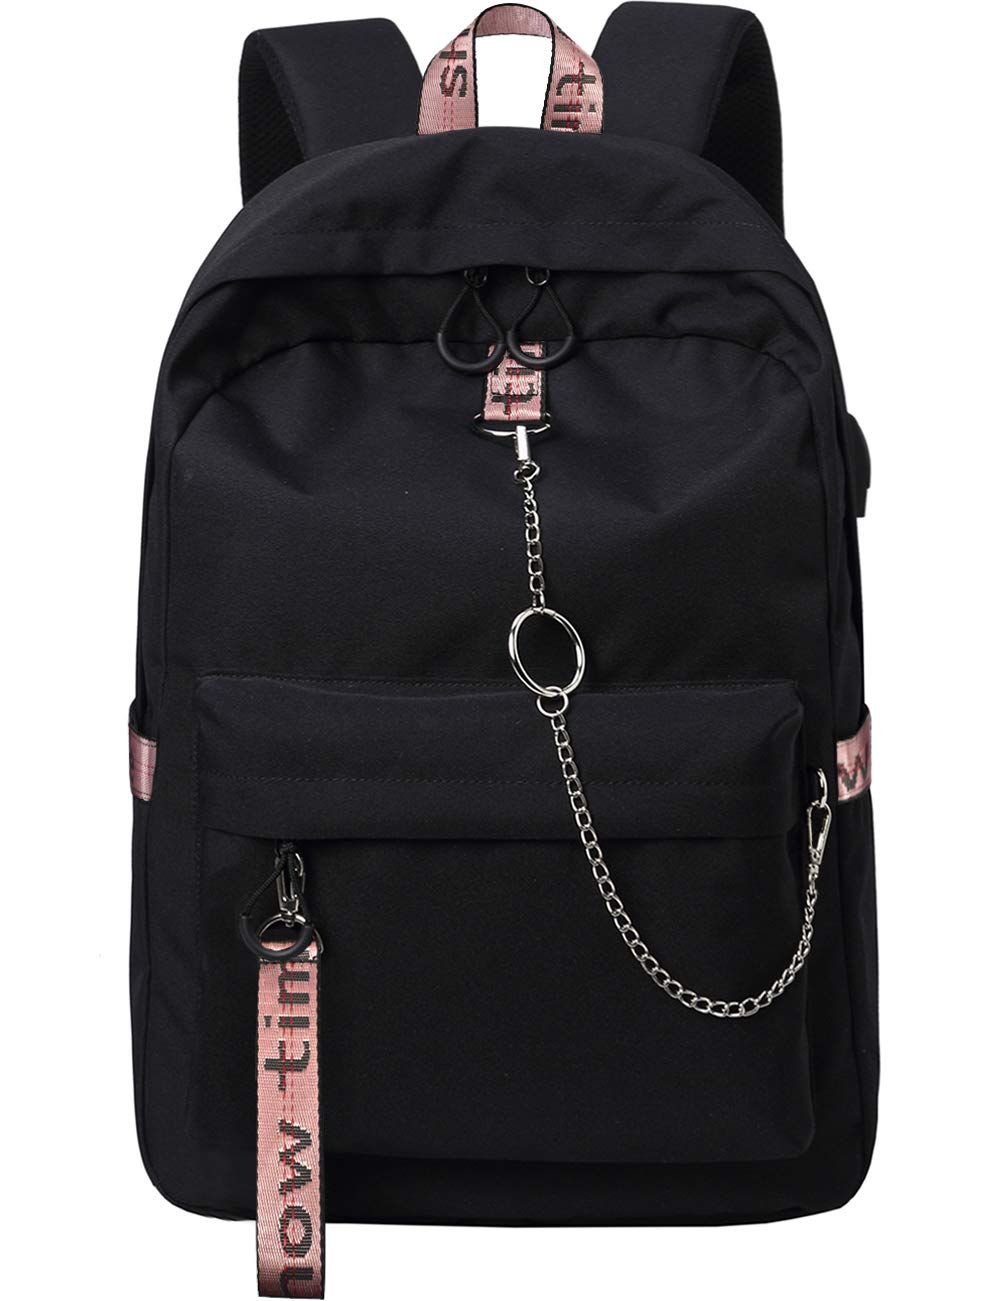 Mygreen 15.6 inch Water Resistant Travel Laptop Backpack for Women Mens with USB Charging Port Carry on Luggage Bag Lightweight College students Notebook Computer Backpacks - Black&Pink